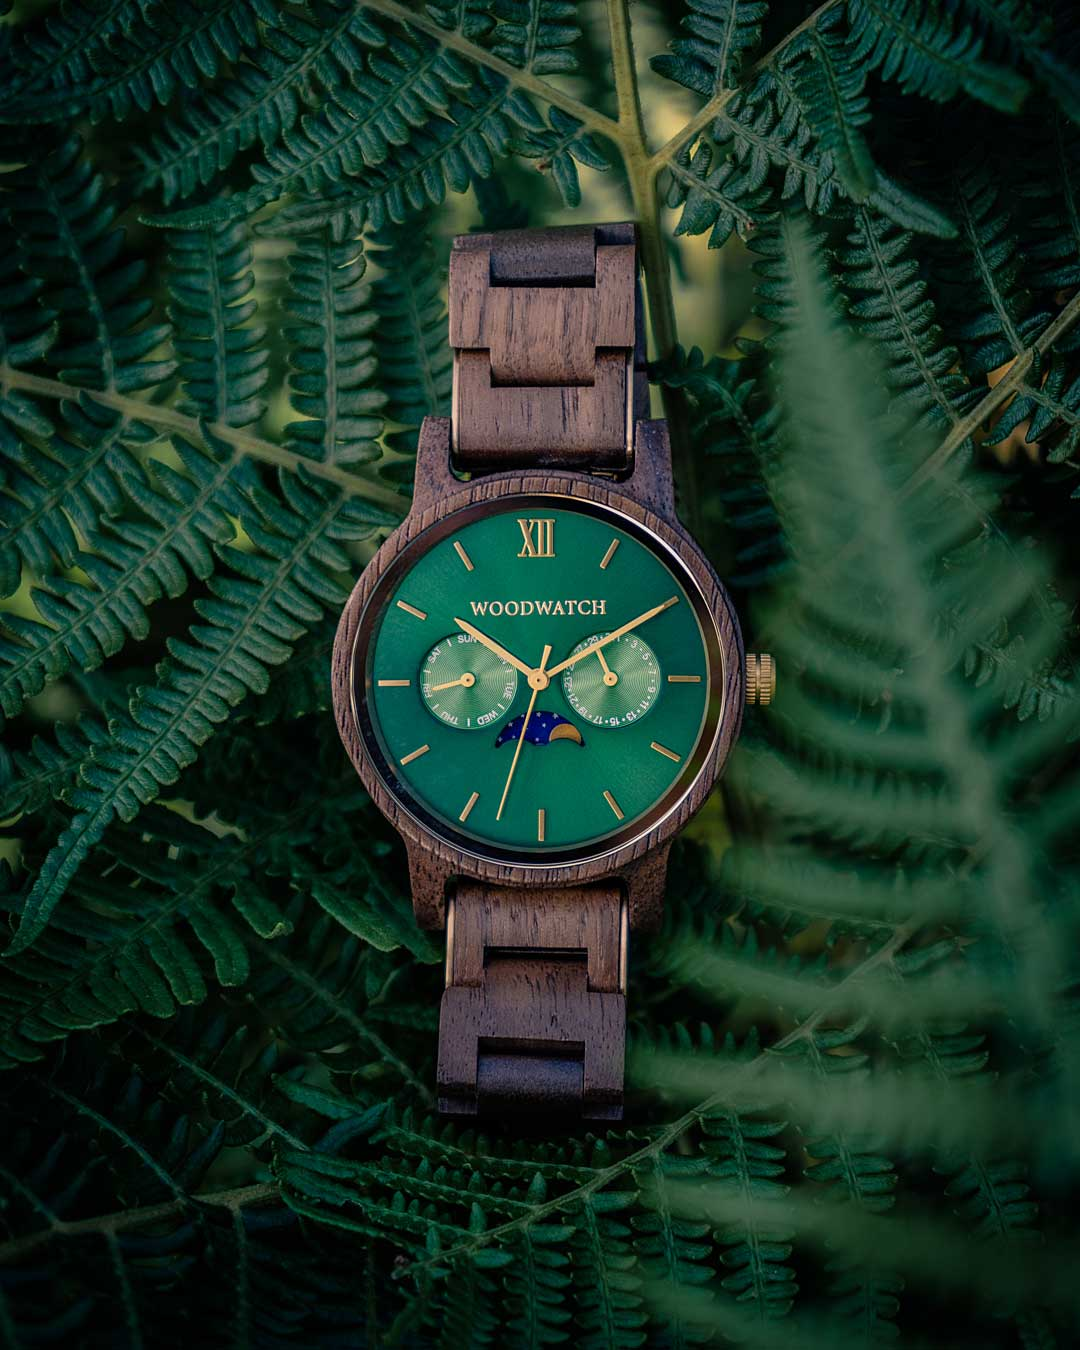 WoodWatch photography